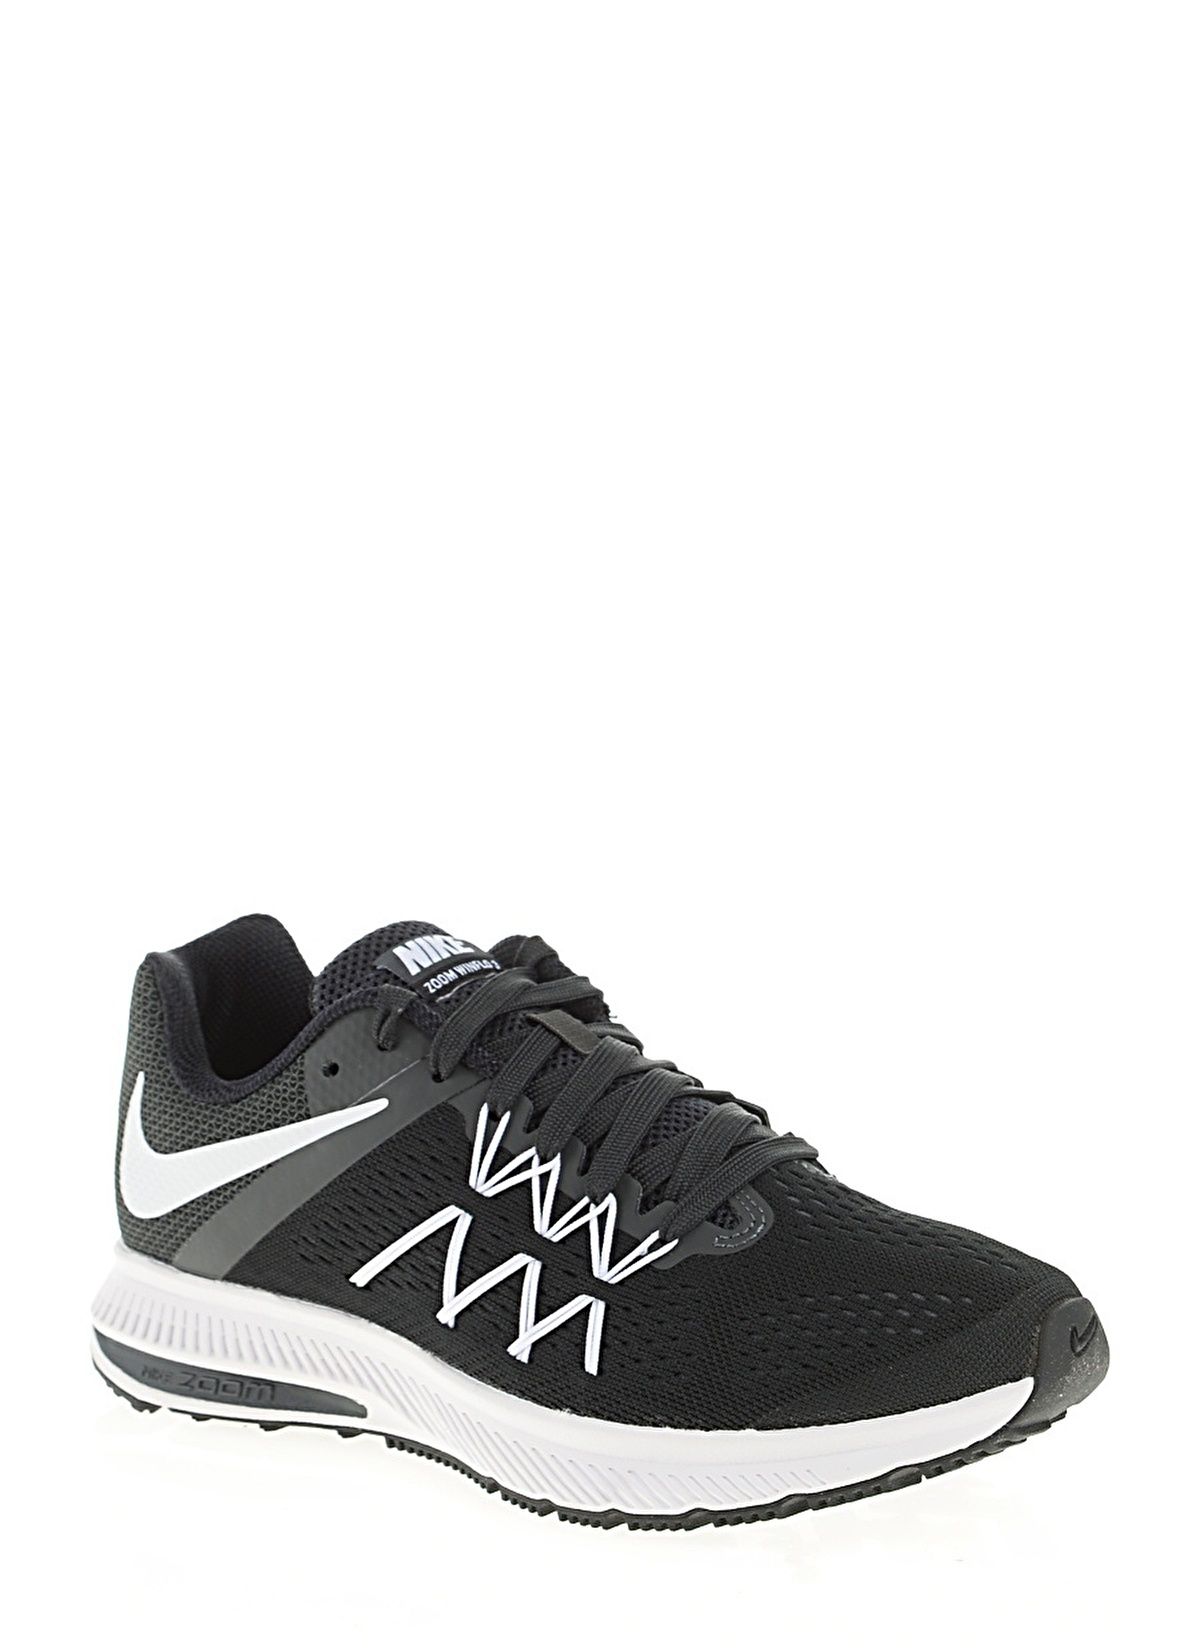 uk availability 7ca04 eff7b 831562-001-Wmns-Nike-Zoom-Winflo-3